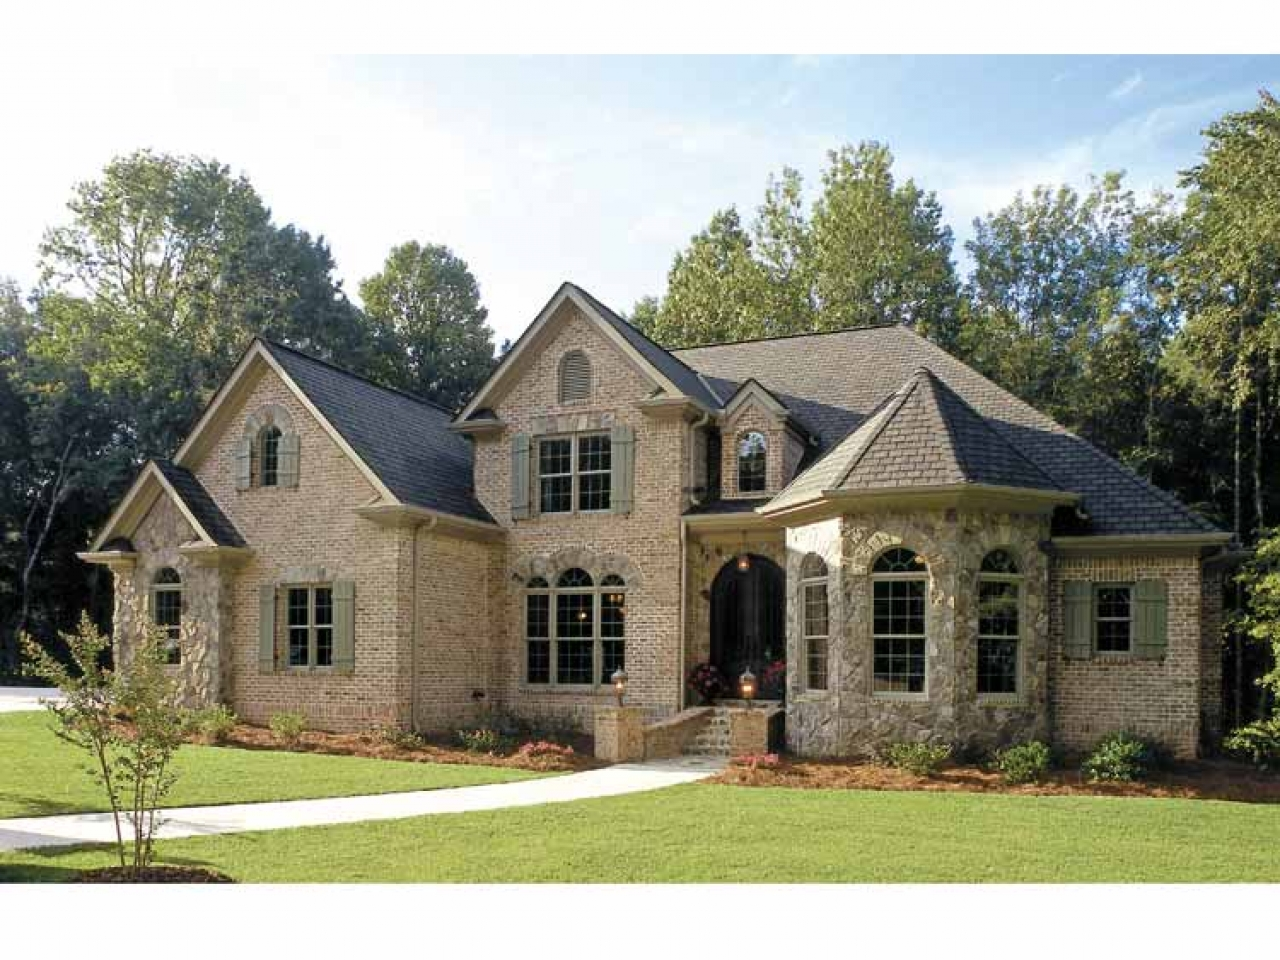 French Country Home French Country Garden French Country Homes House Plans